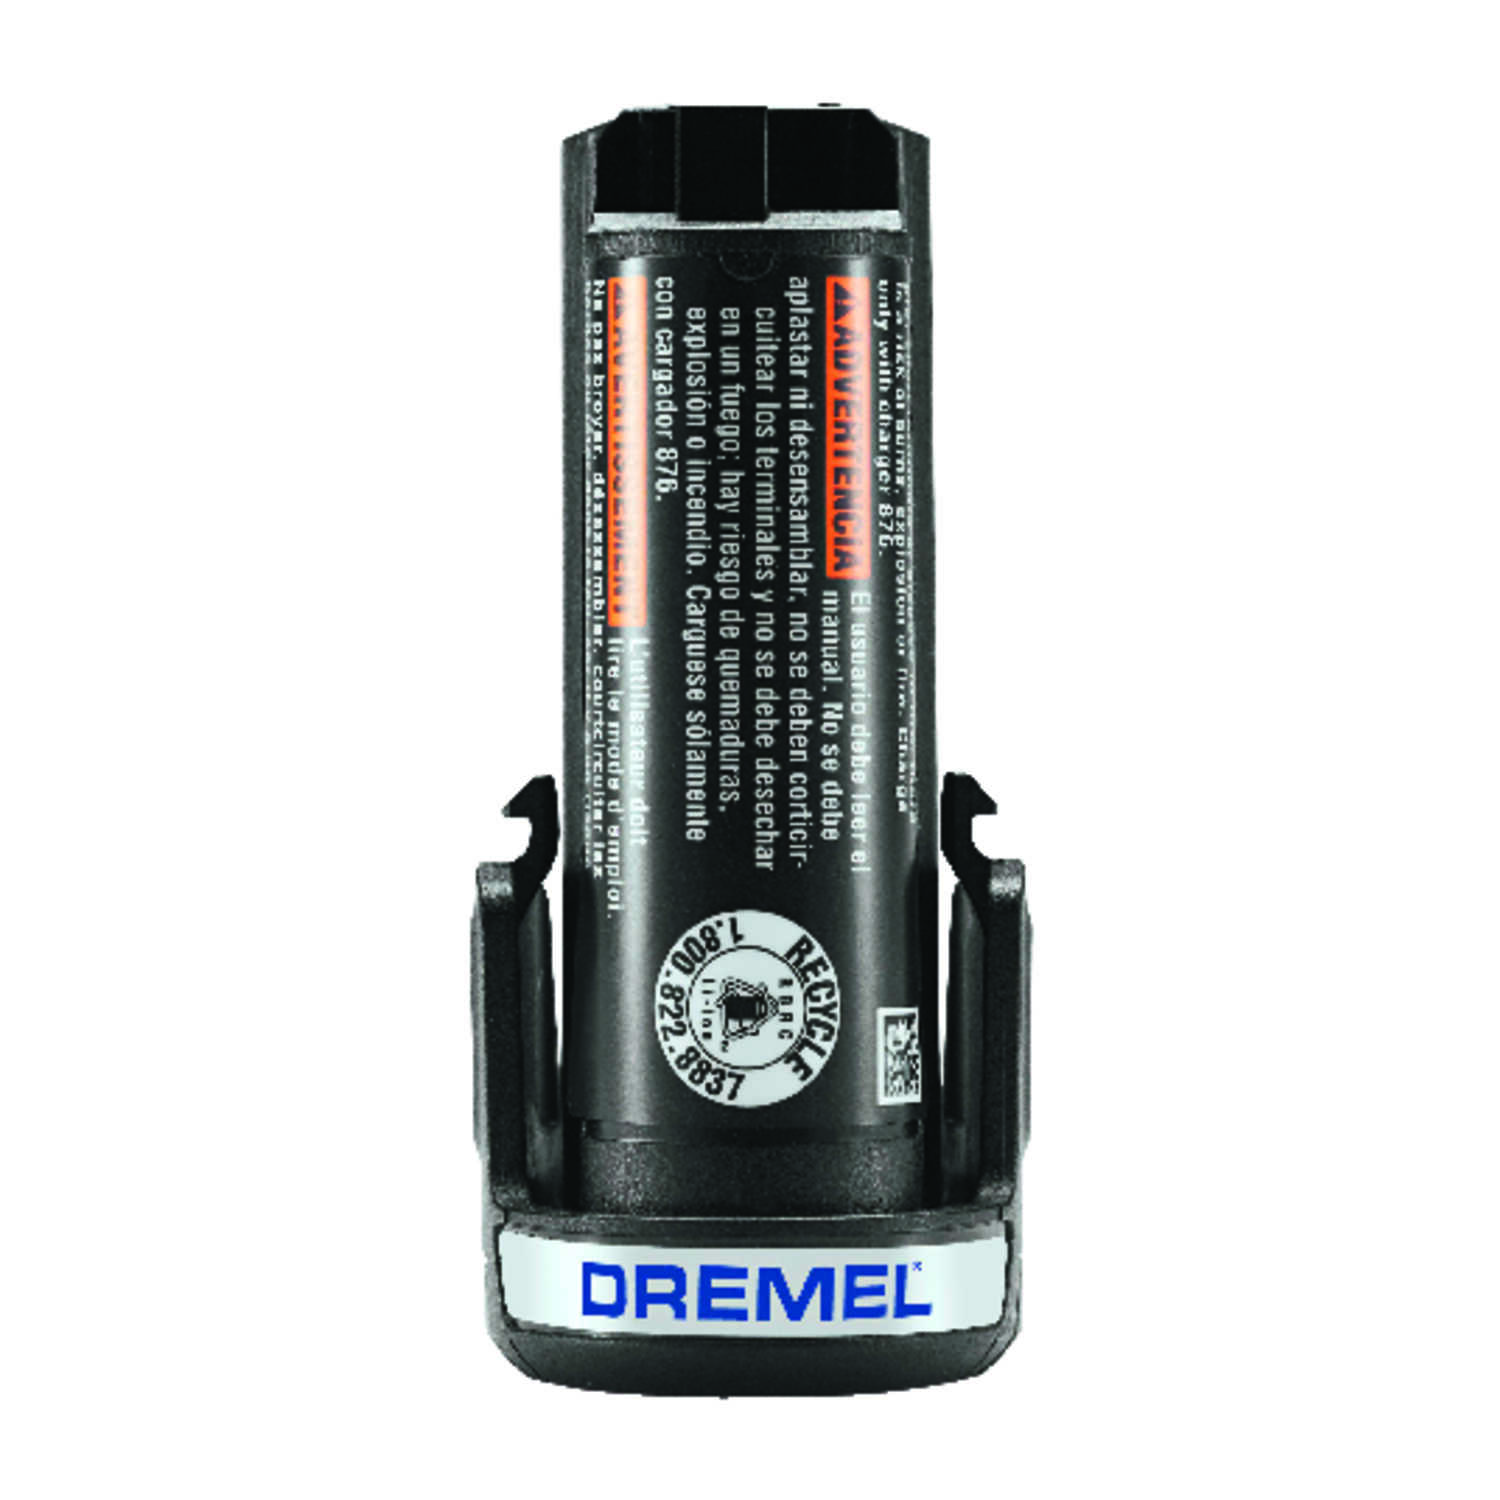 Dremel  8 volt Lithium-Ion  Battery Pack  1 pc.